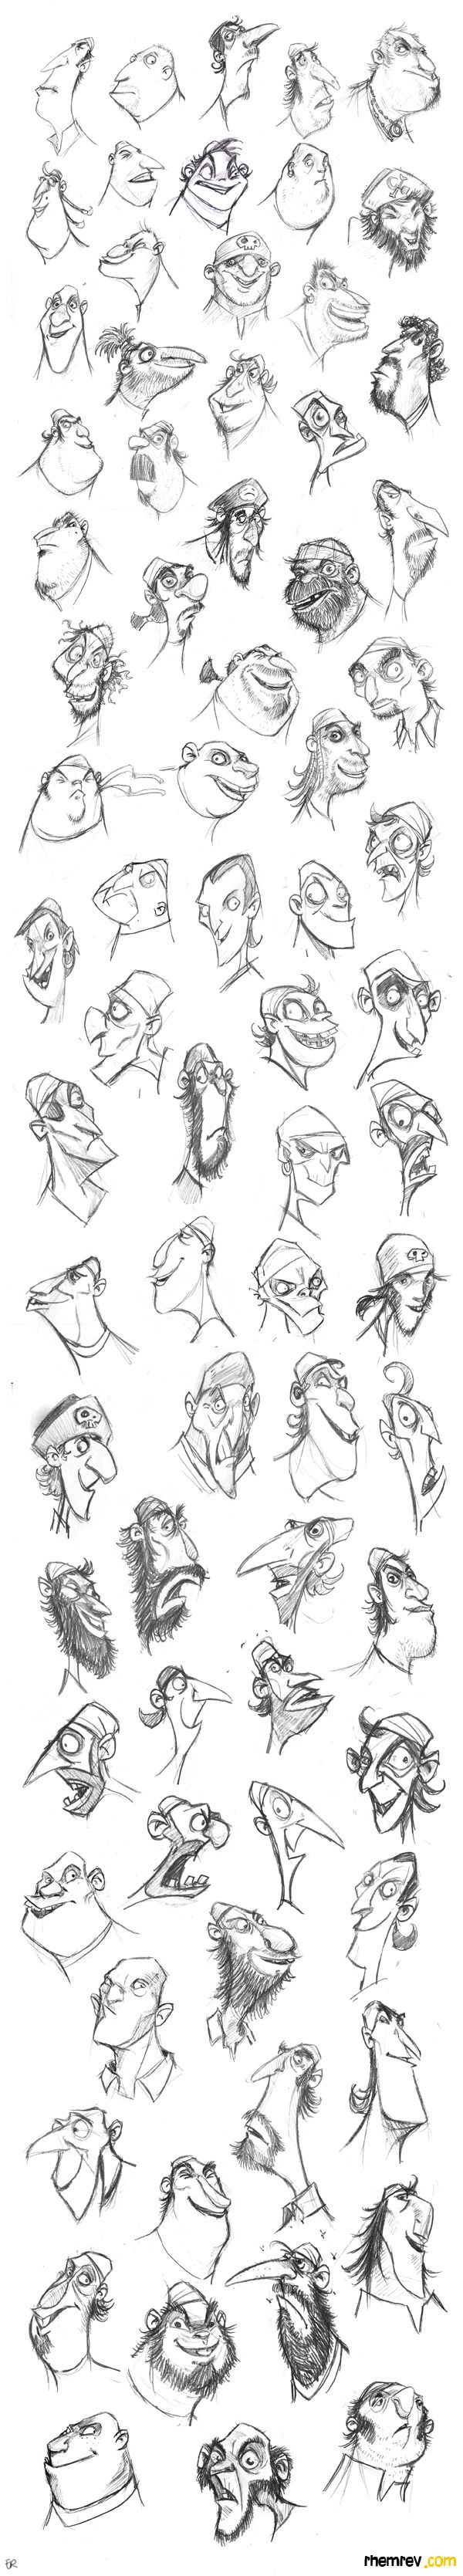 Visual development | Drawing Lessons | Pinterest | Caricaturas ...